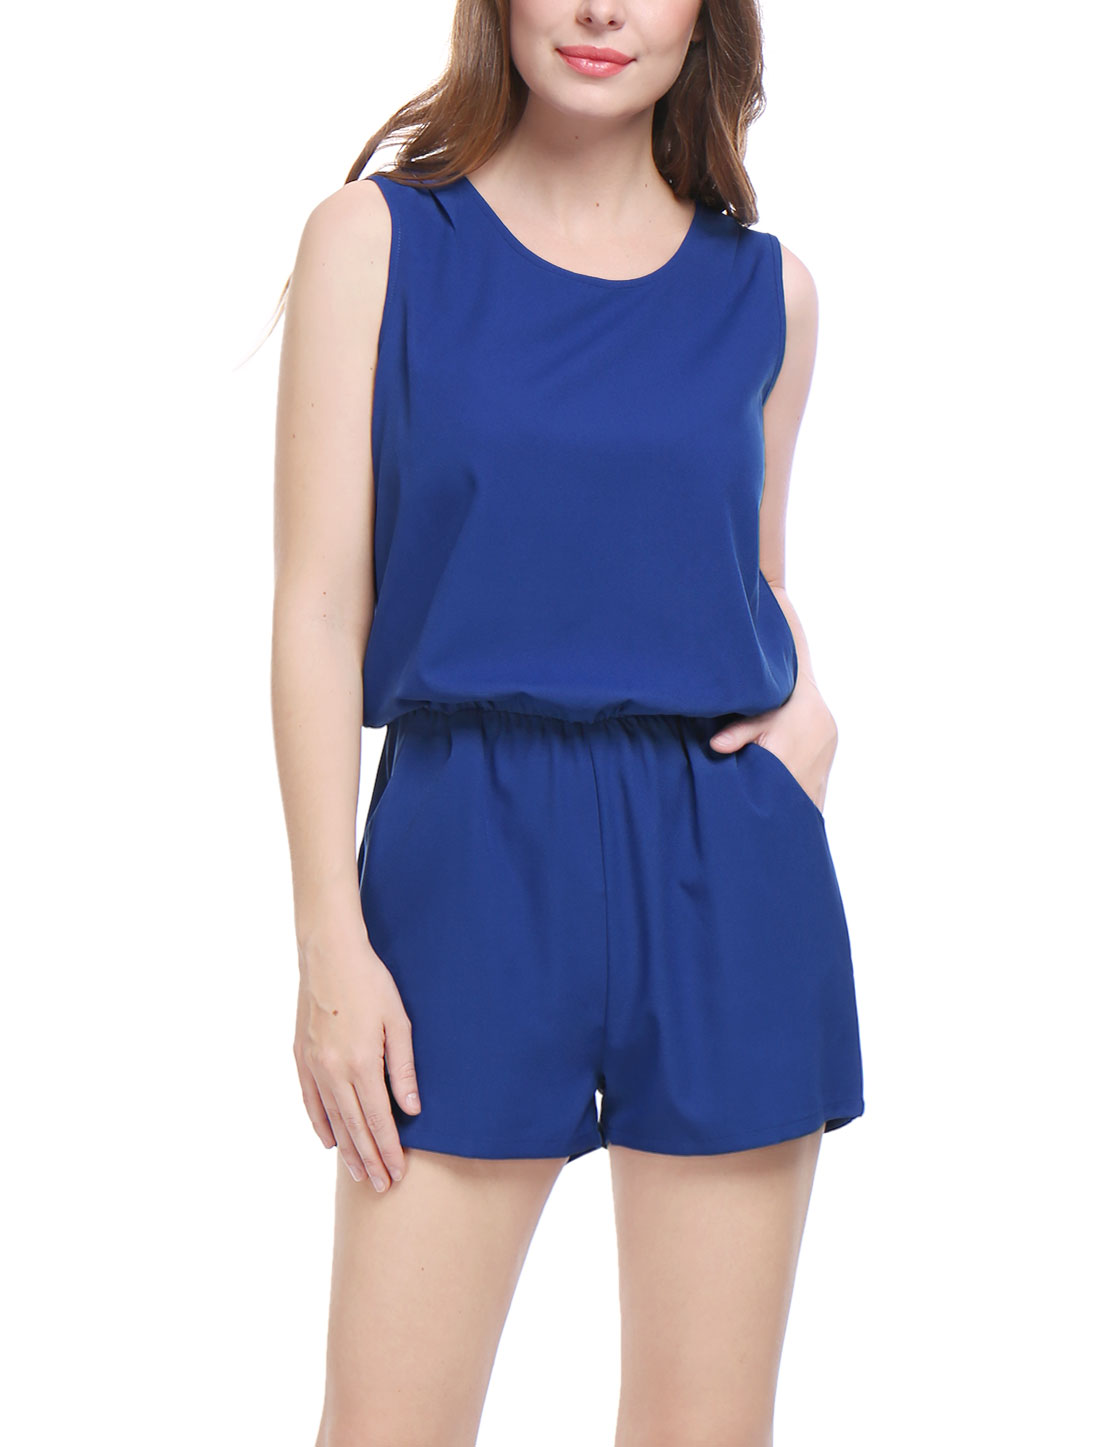 Women Sleeveless Cut Out Back Elastic Waist Romper Dark Blue XL